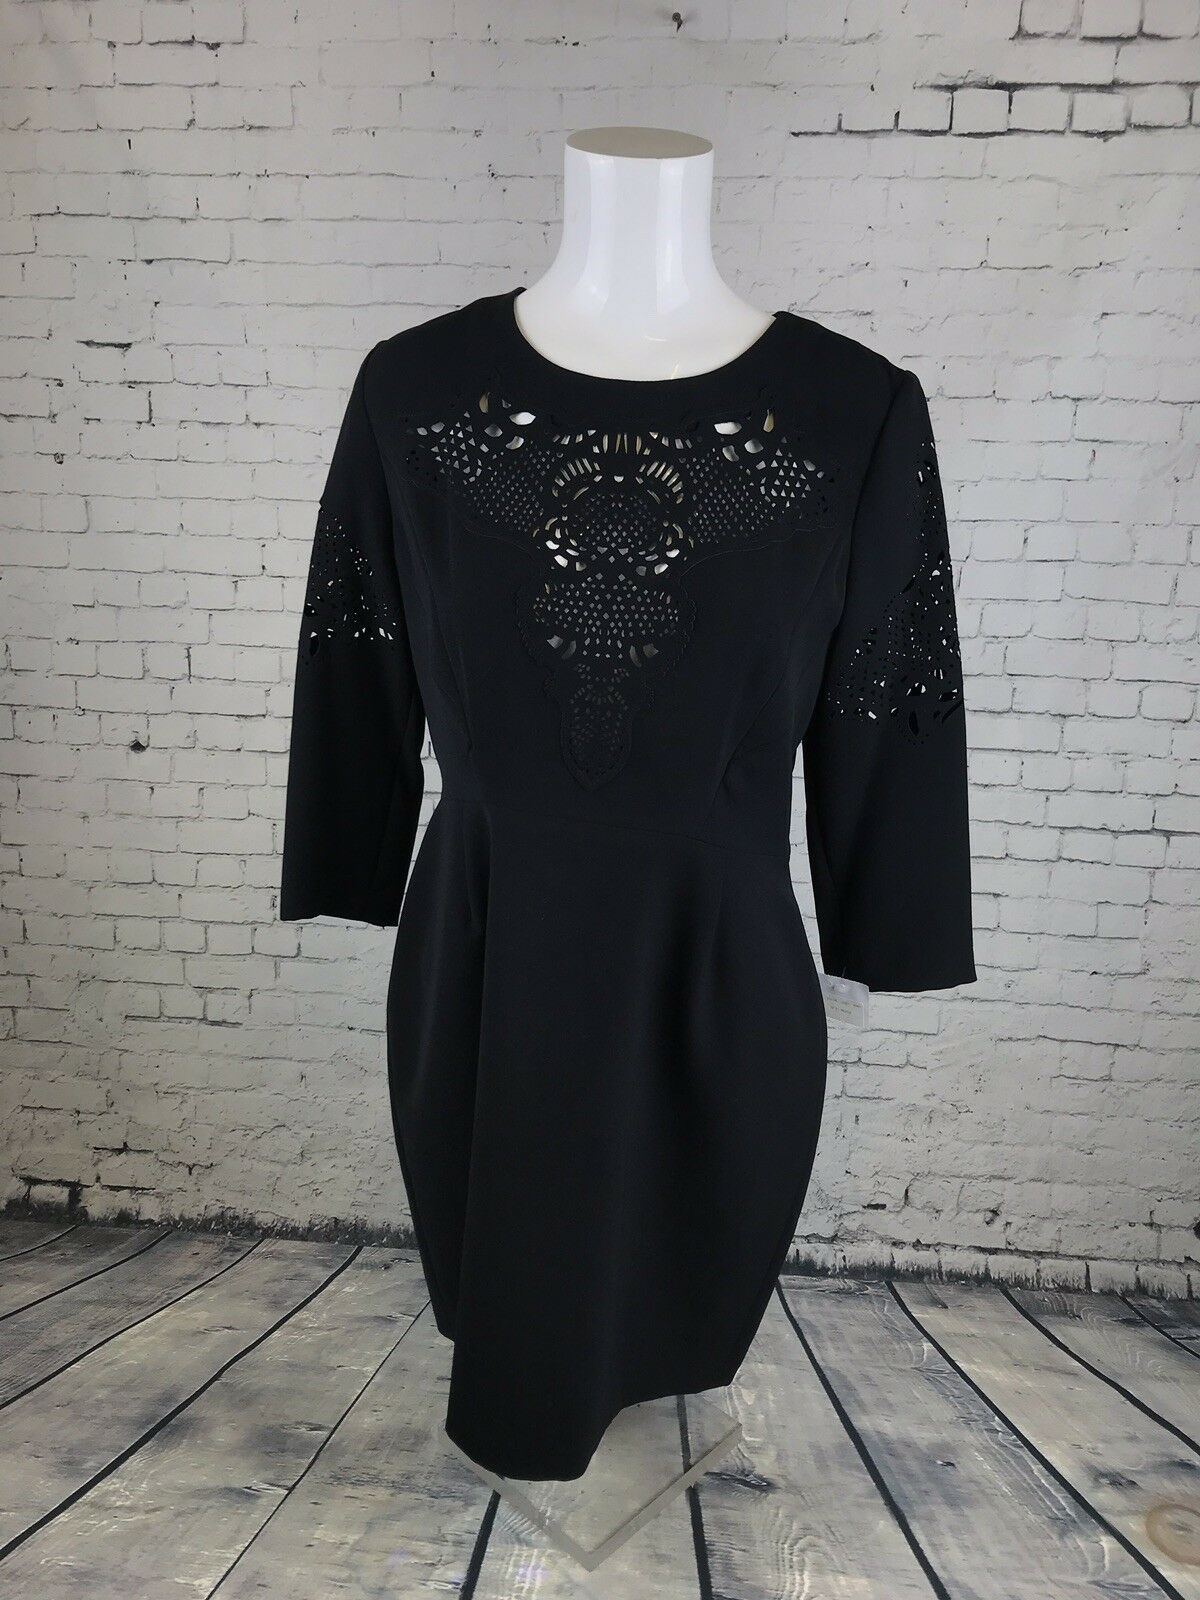 Stunning The Kooples Brand New schwarz Dress With Laser Cut Detail . Größe XL   A14